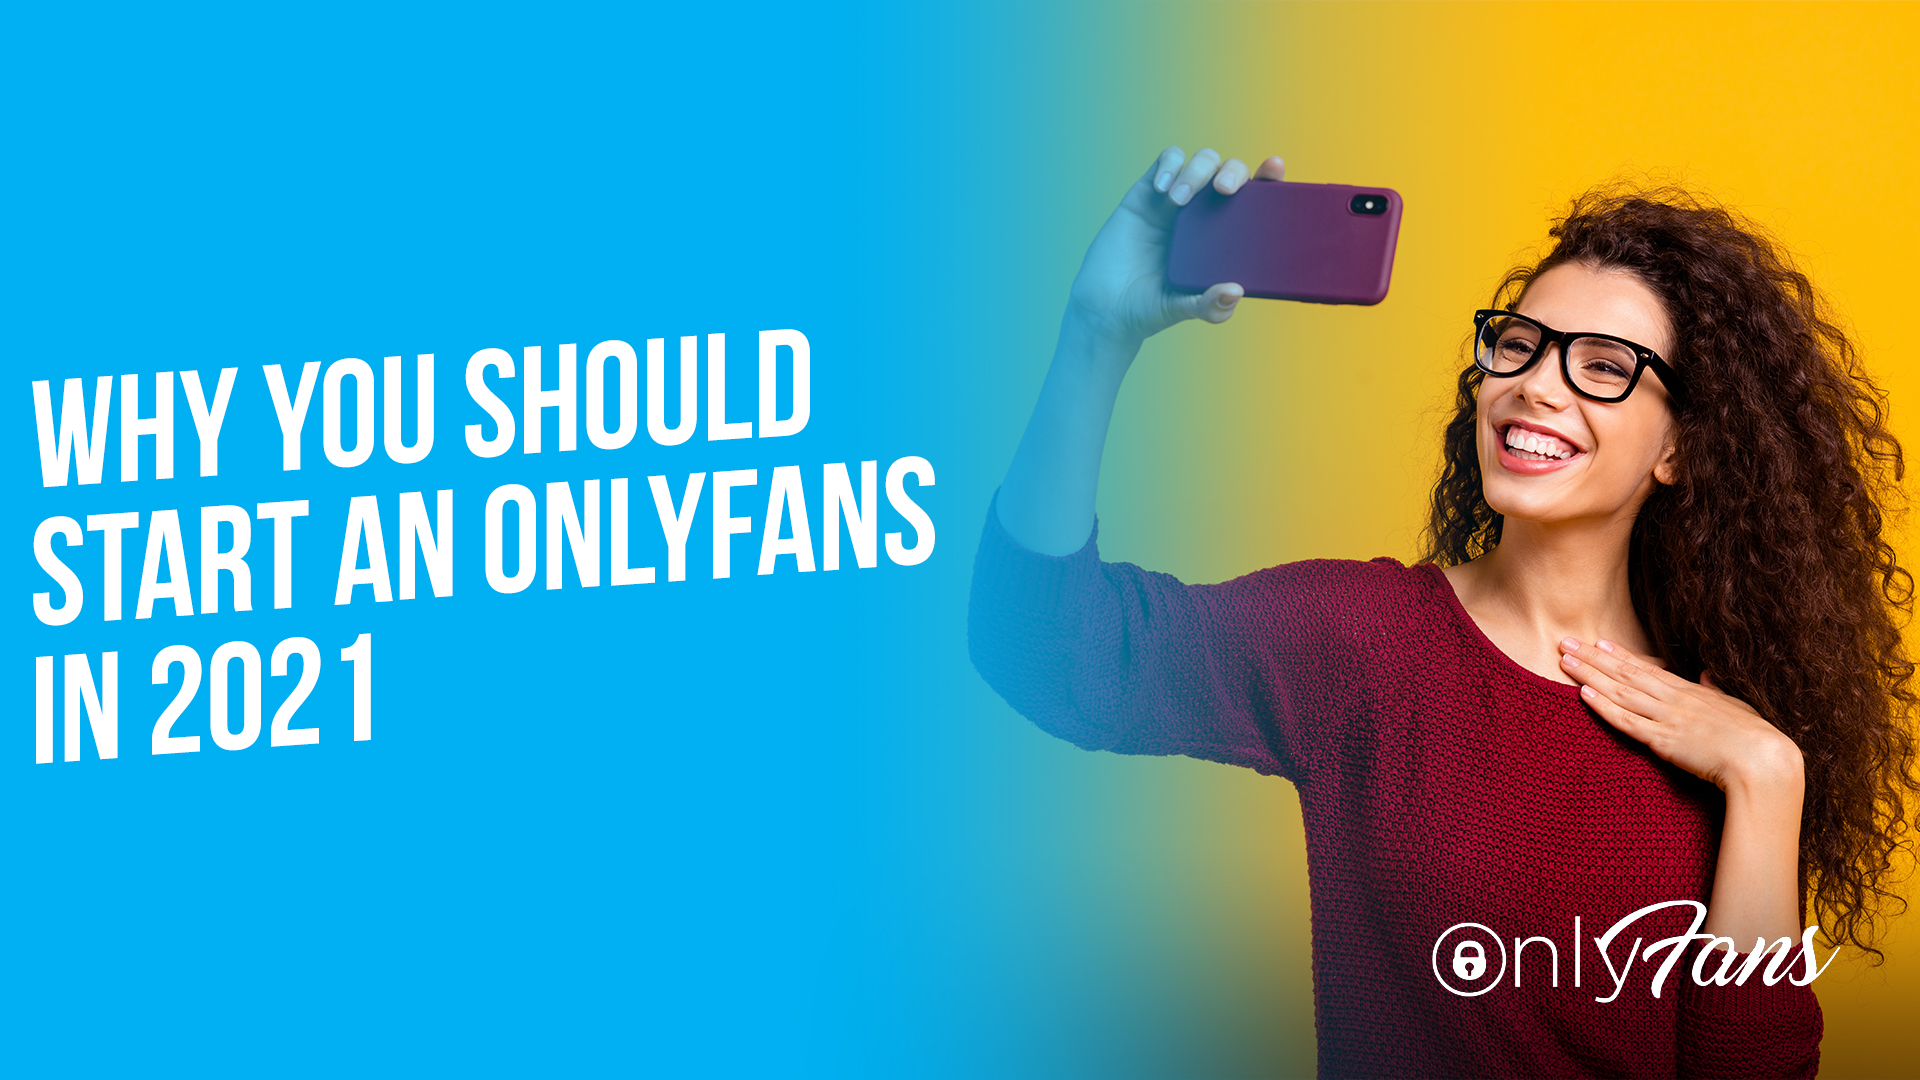 Why you should start an OnlyFans in 2021